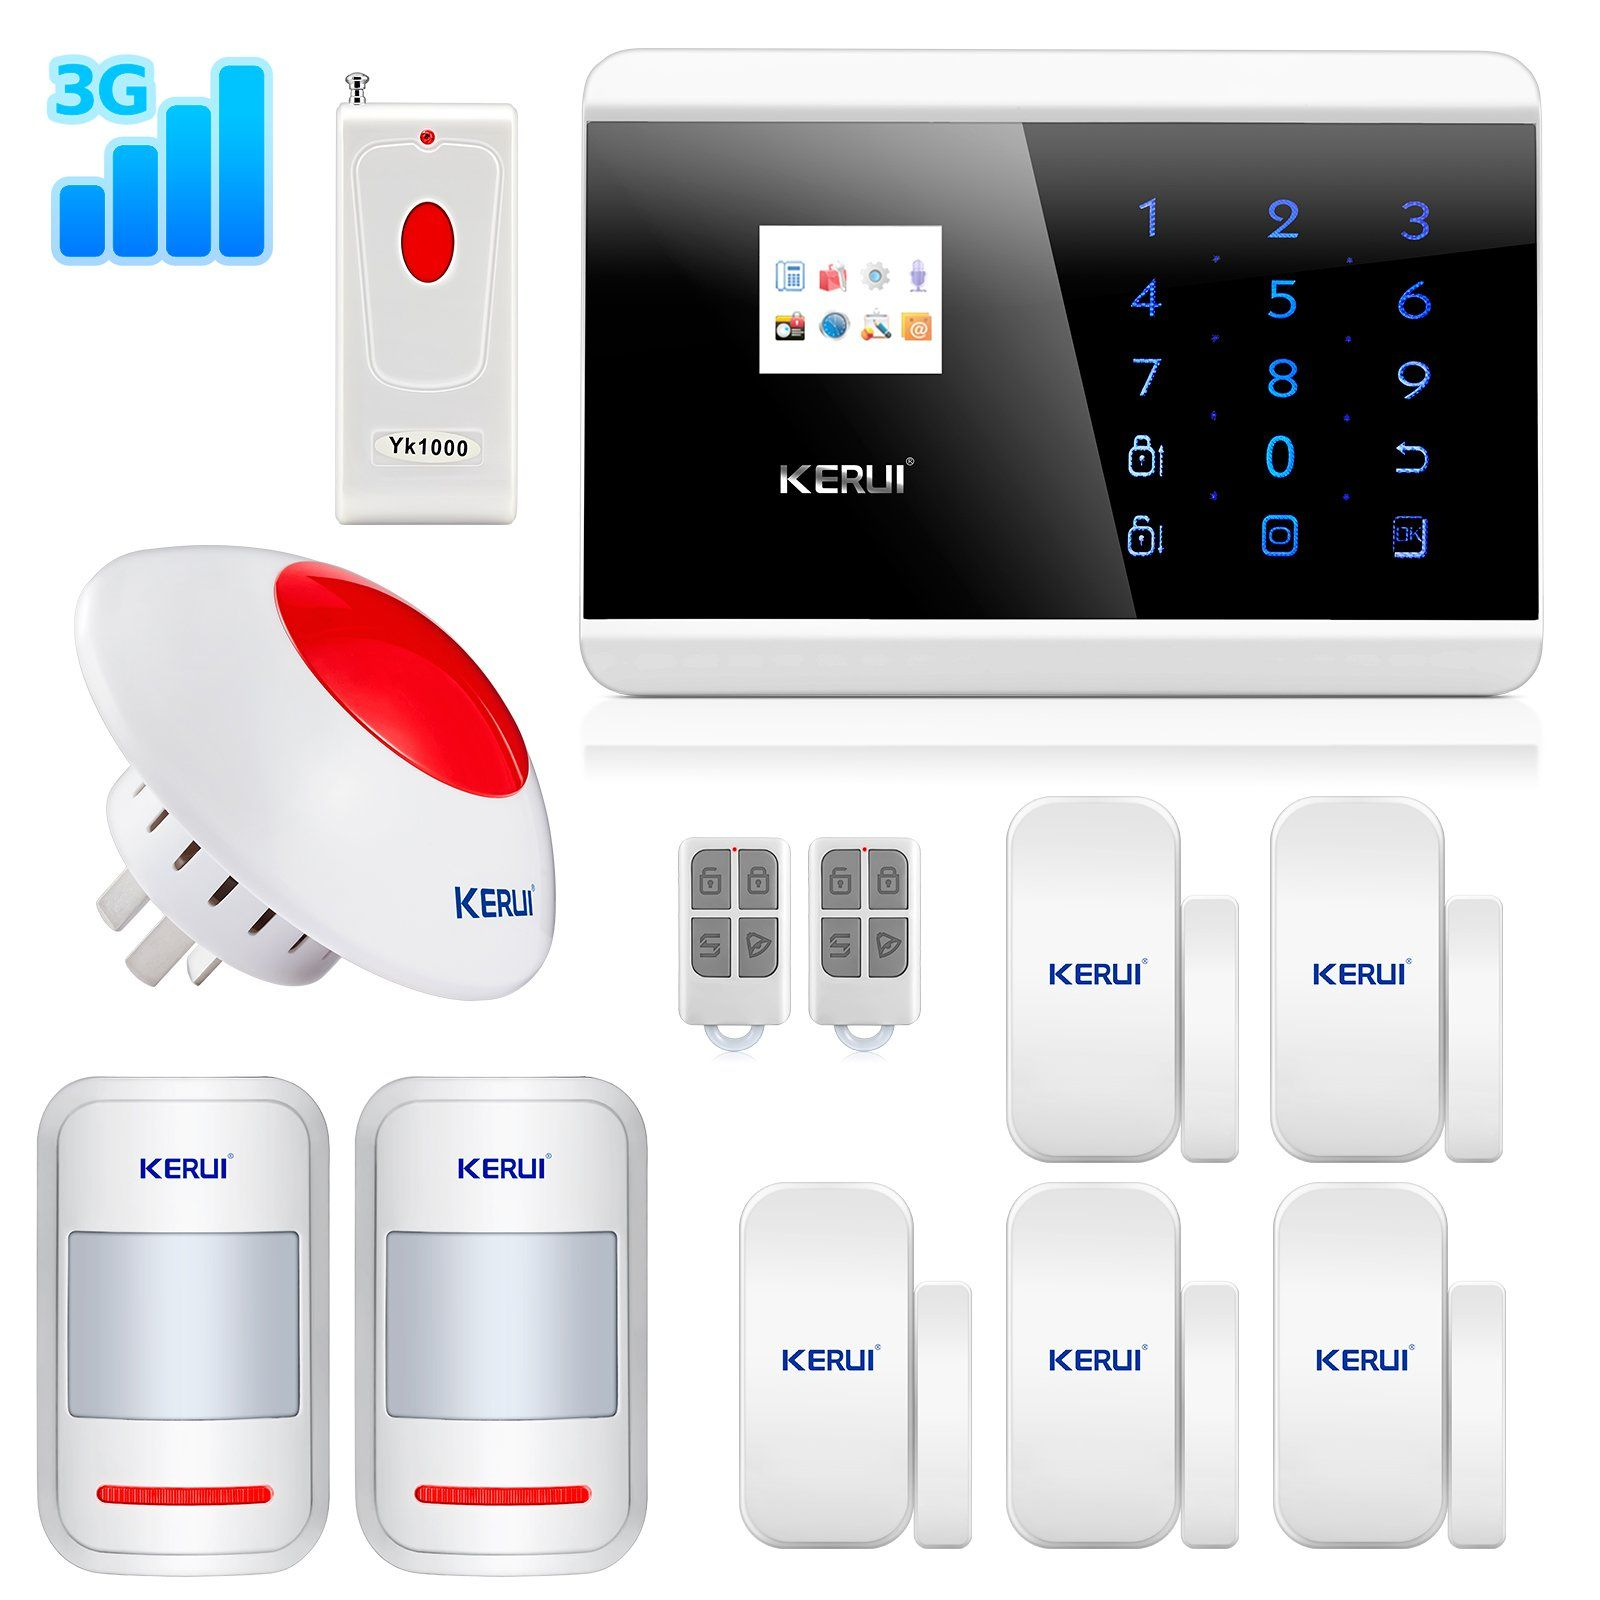 KERUI Wireless ANDROID IOS APP G WCDMA Home Security Alarm System